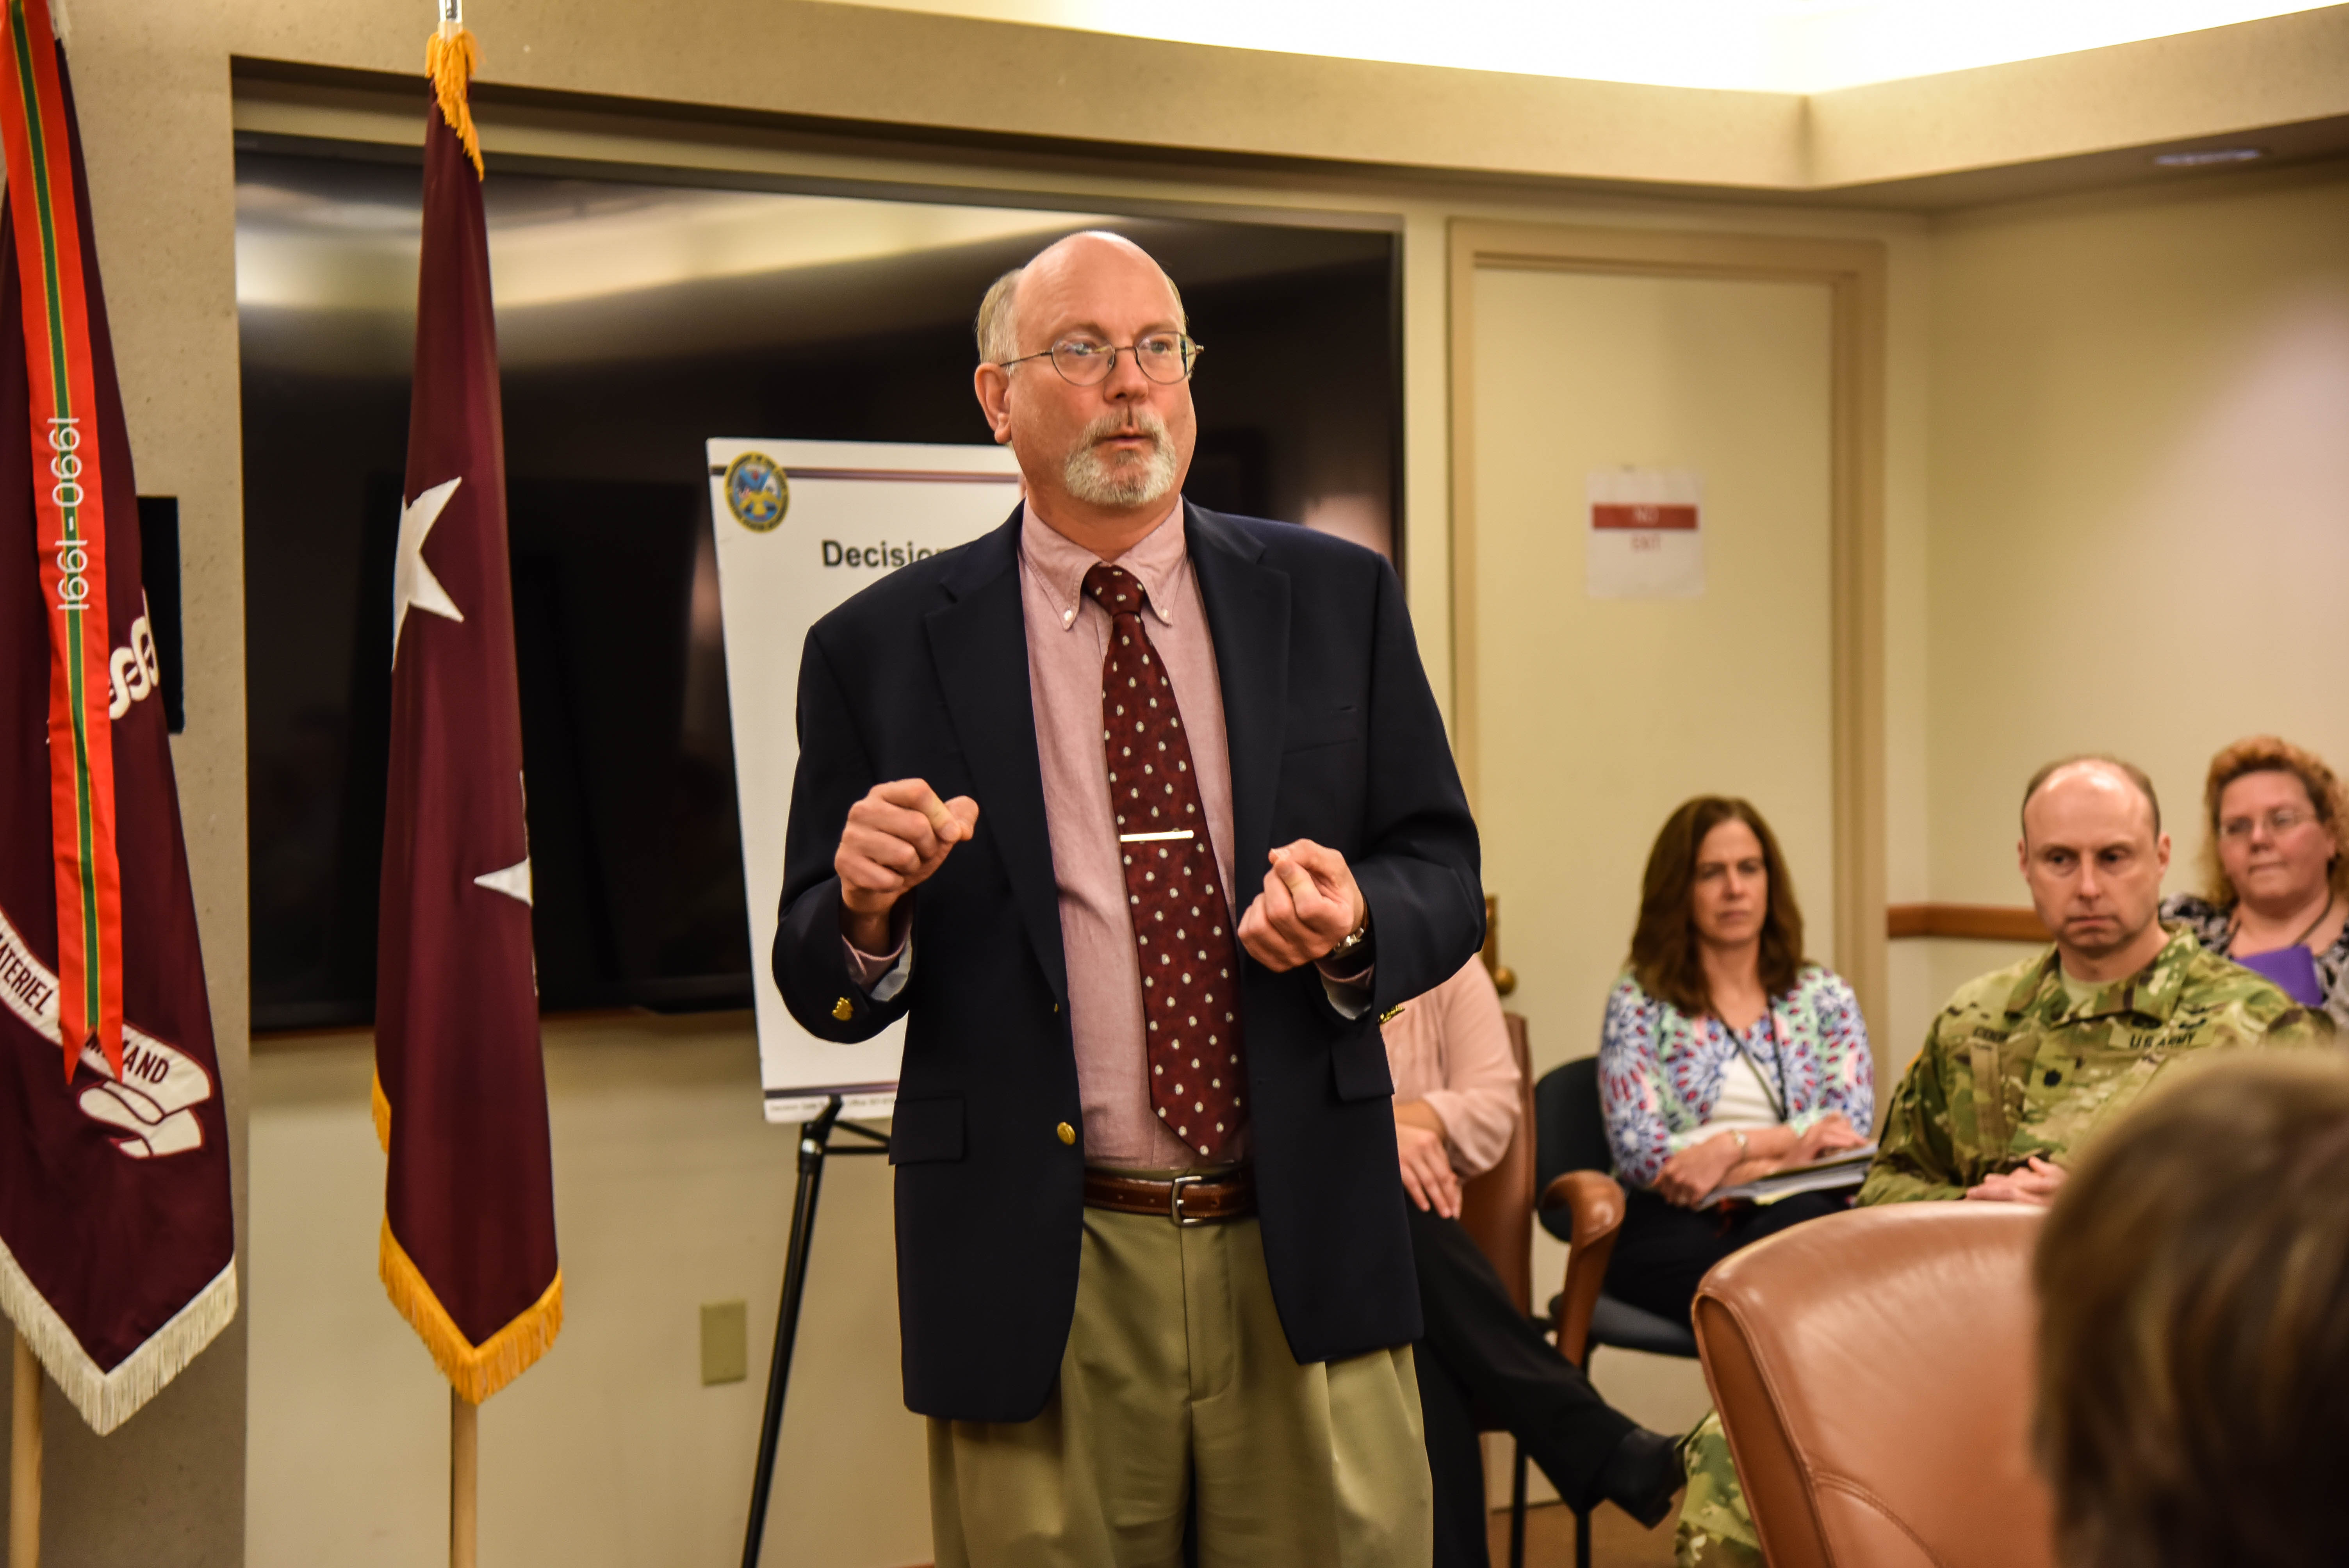 Dr. Kenneth Bertram addresses the workforce during the 2016 Decision Gate Awards ceremony USAMRMC headquarters at Fort Detrick. (U.S. Army photo by Crystal Maynard, USAMRMC)